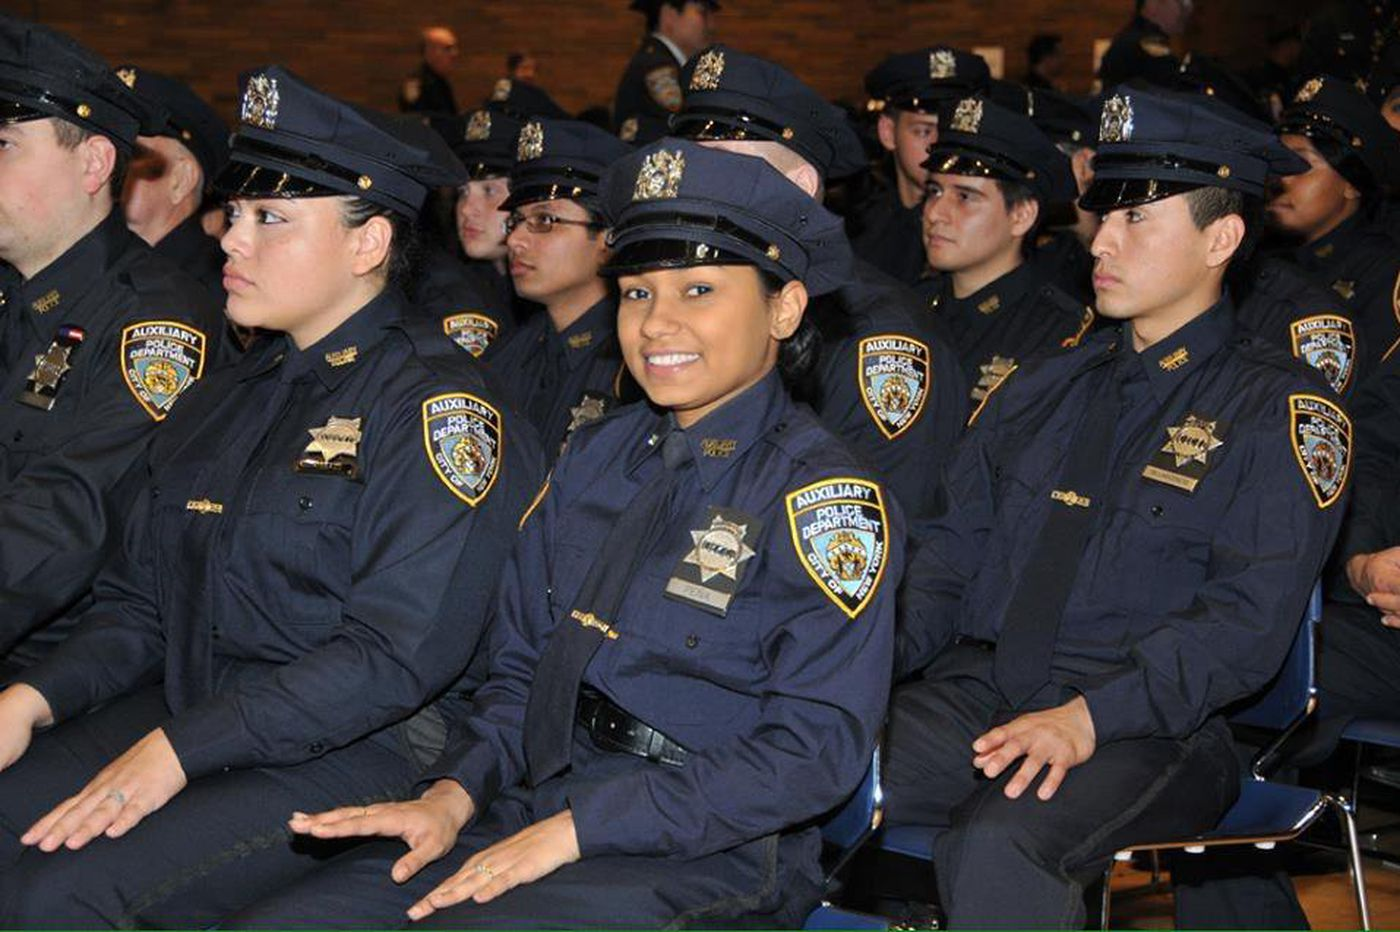 Do you want a Faux Police Force? | Stu Bykofsky